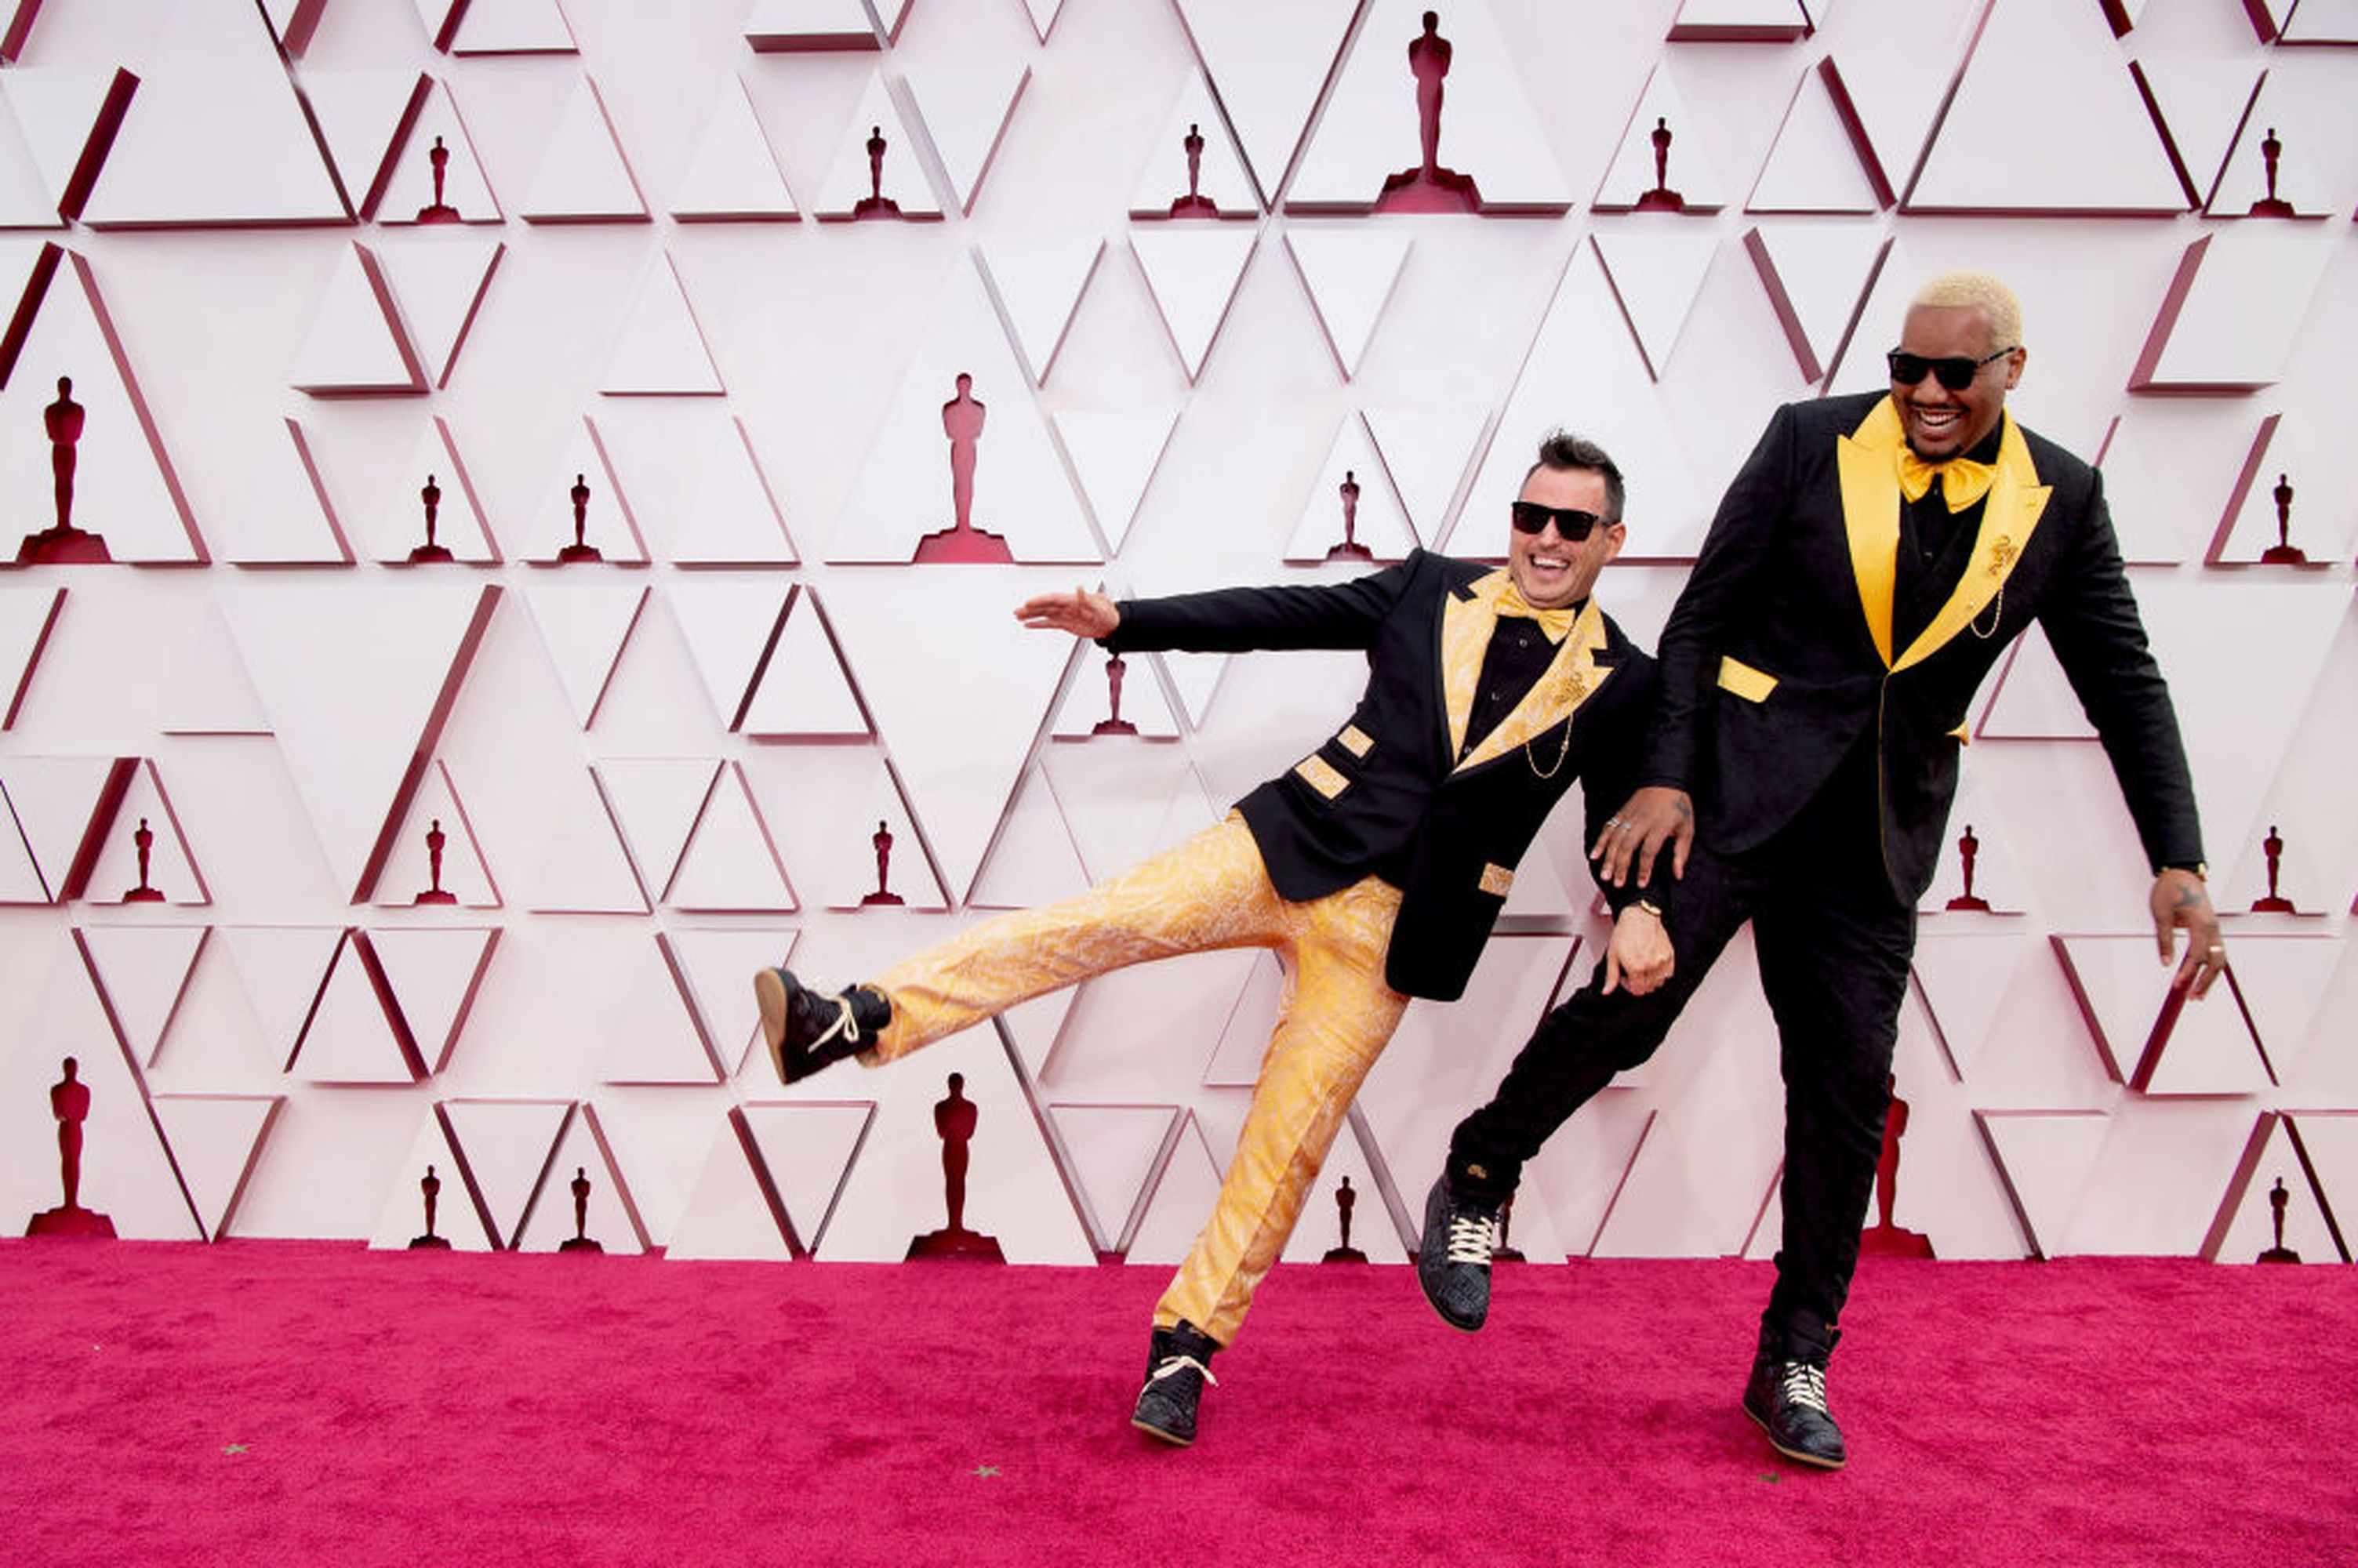 LOS ANGELES, CA - APRIL 25: (For editorial use only) In this posted photo provided by AMPAS, (LR) Desmond Rowe and Travon Free attend the 93rd Annual Academy Awards at Union Station on April 25, 2021 in Los Angeles, California.  (Photo by Matt Beatty / AMPAS via Getty Images)